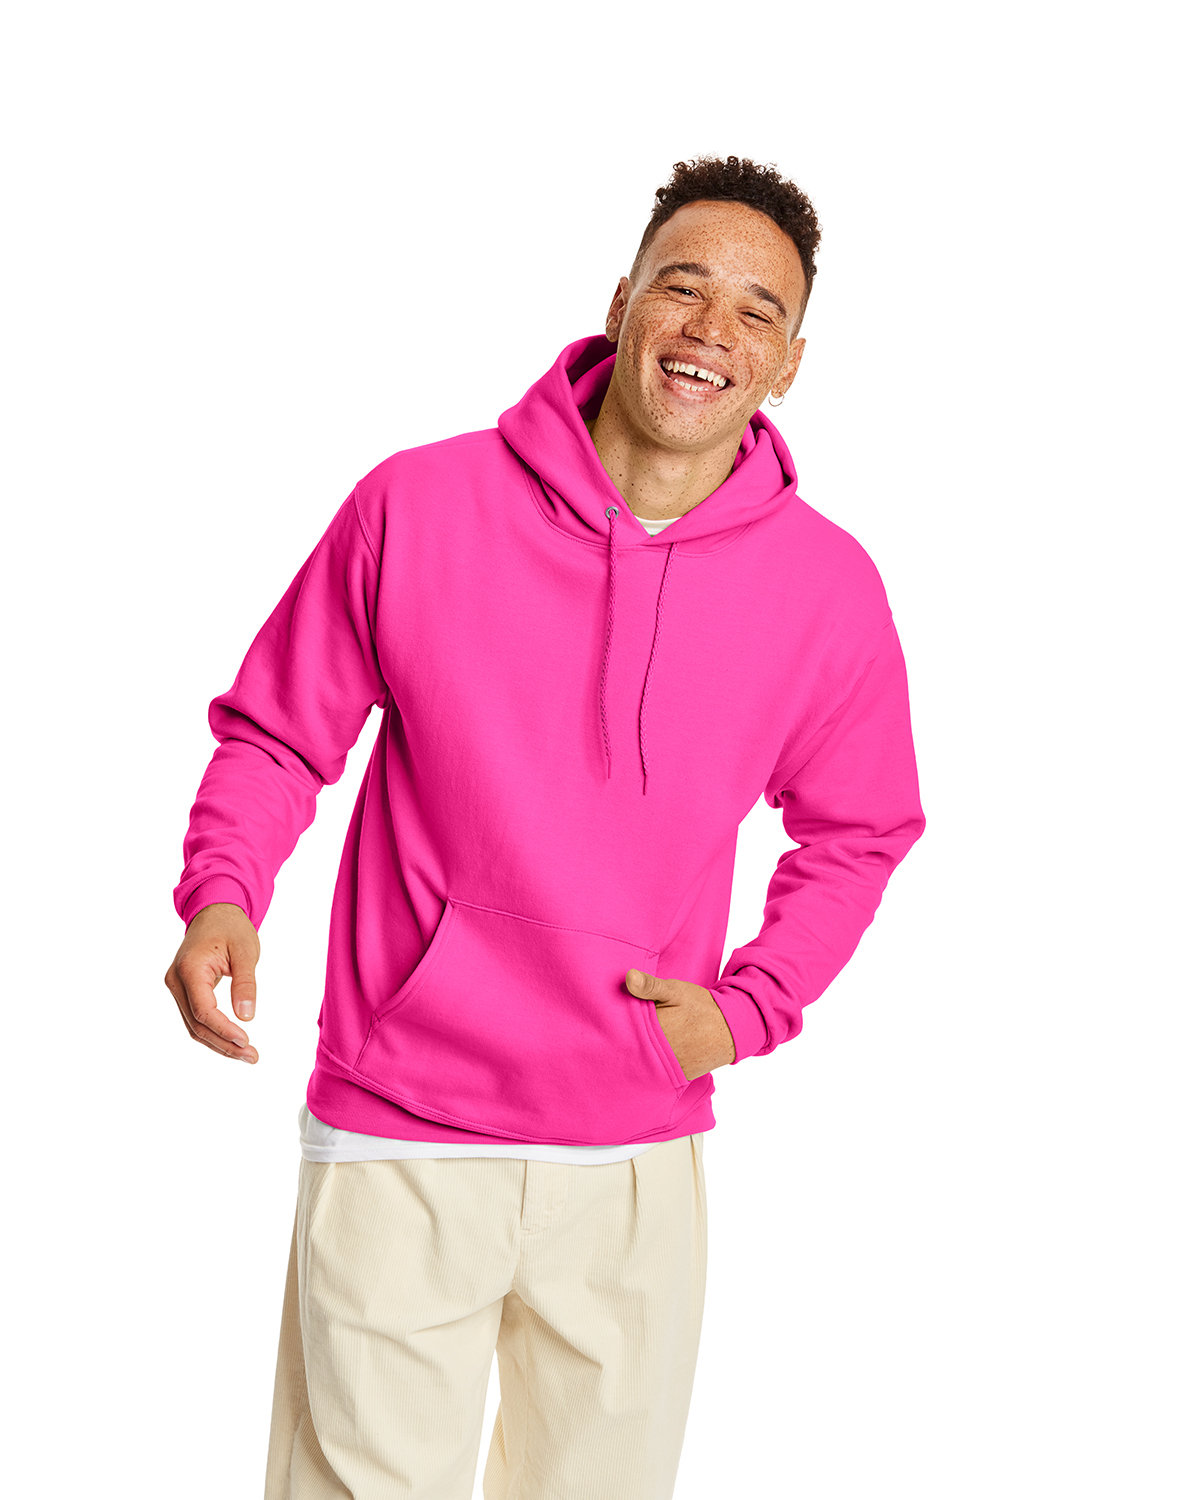 Hanes Unisex Ecosmart® 50/50 Pullover Hooded Sweatshirt SAFETY PINK